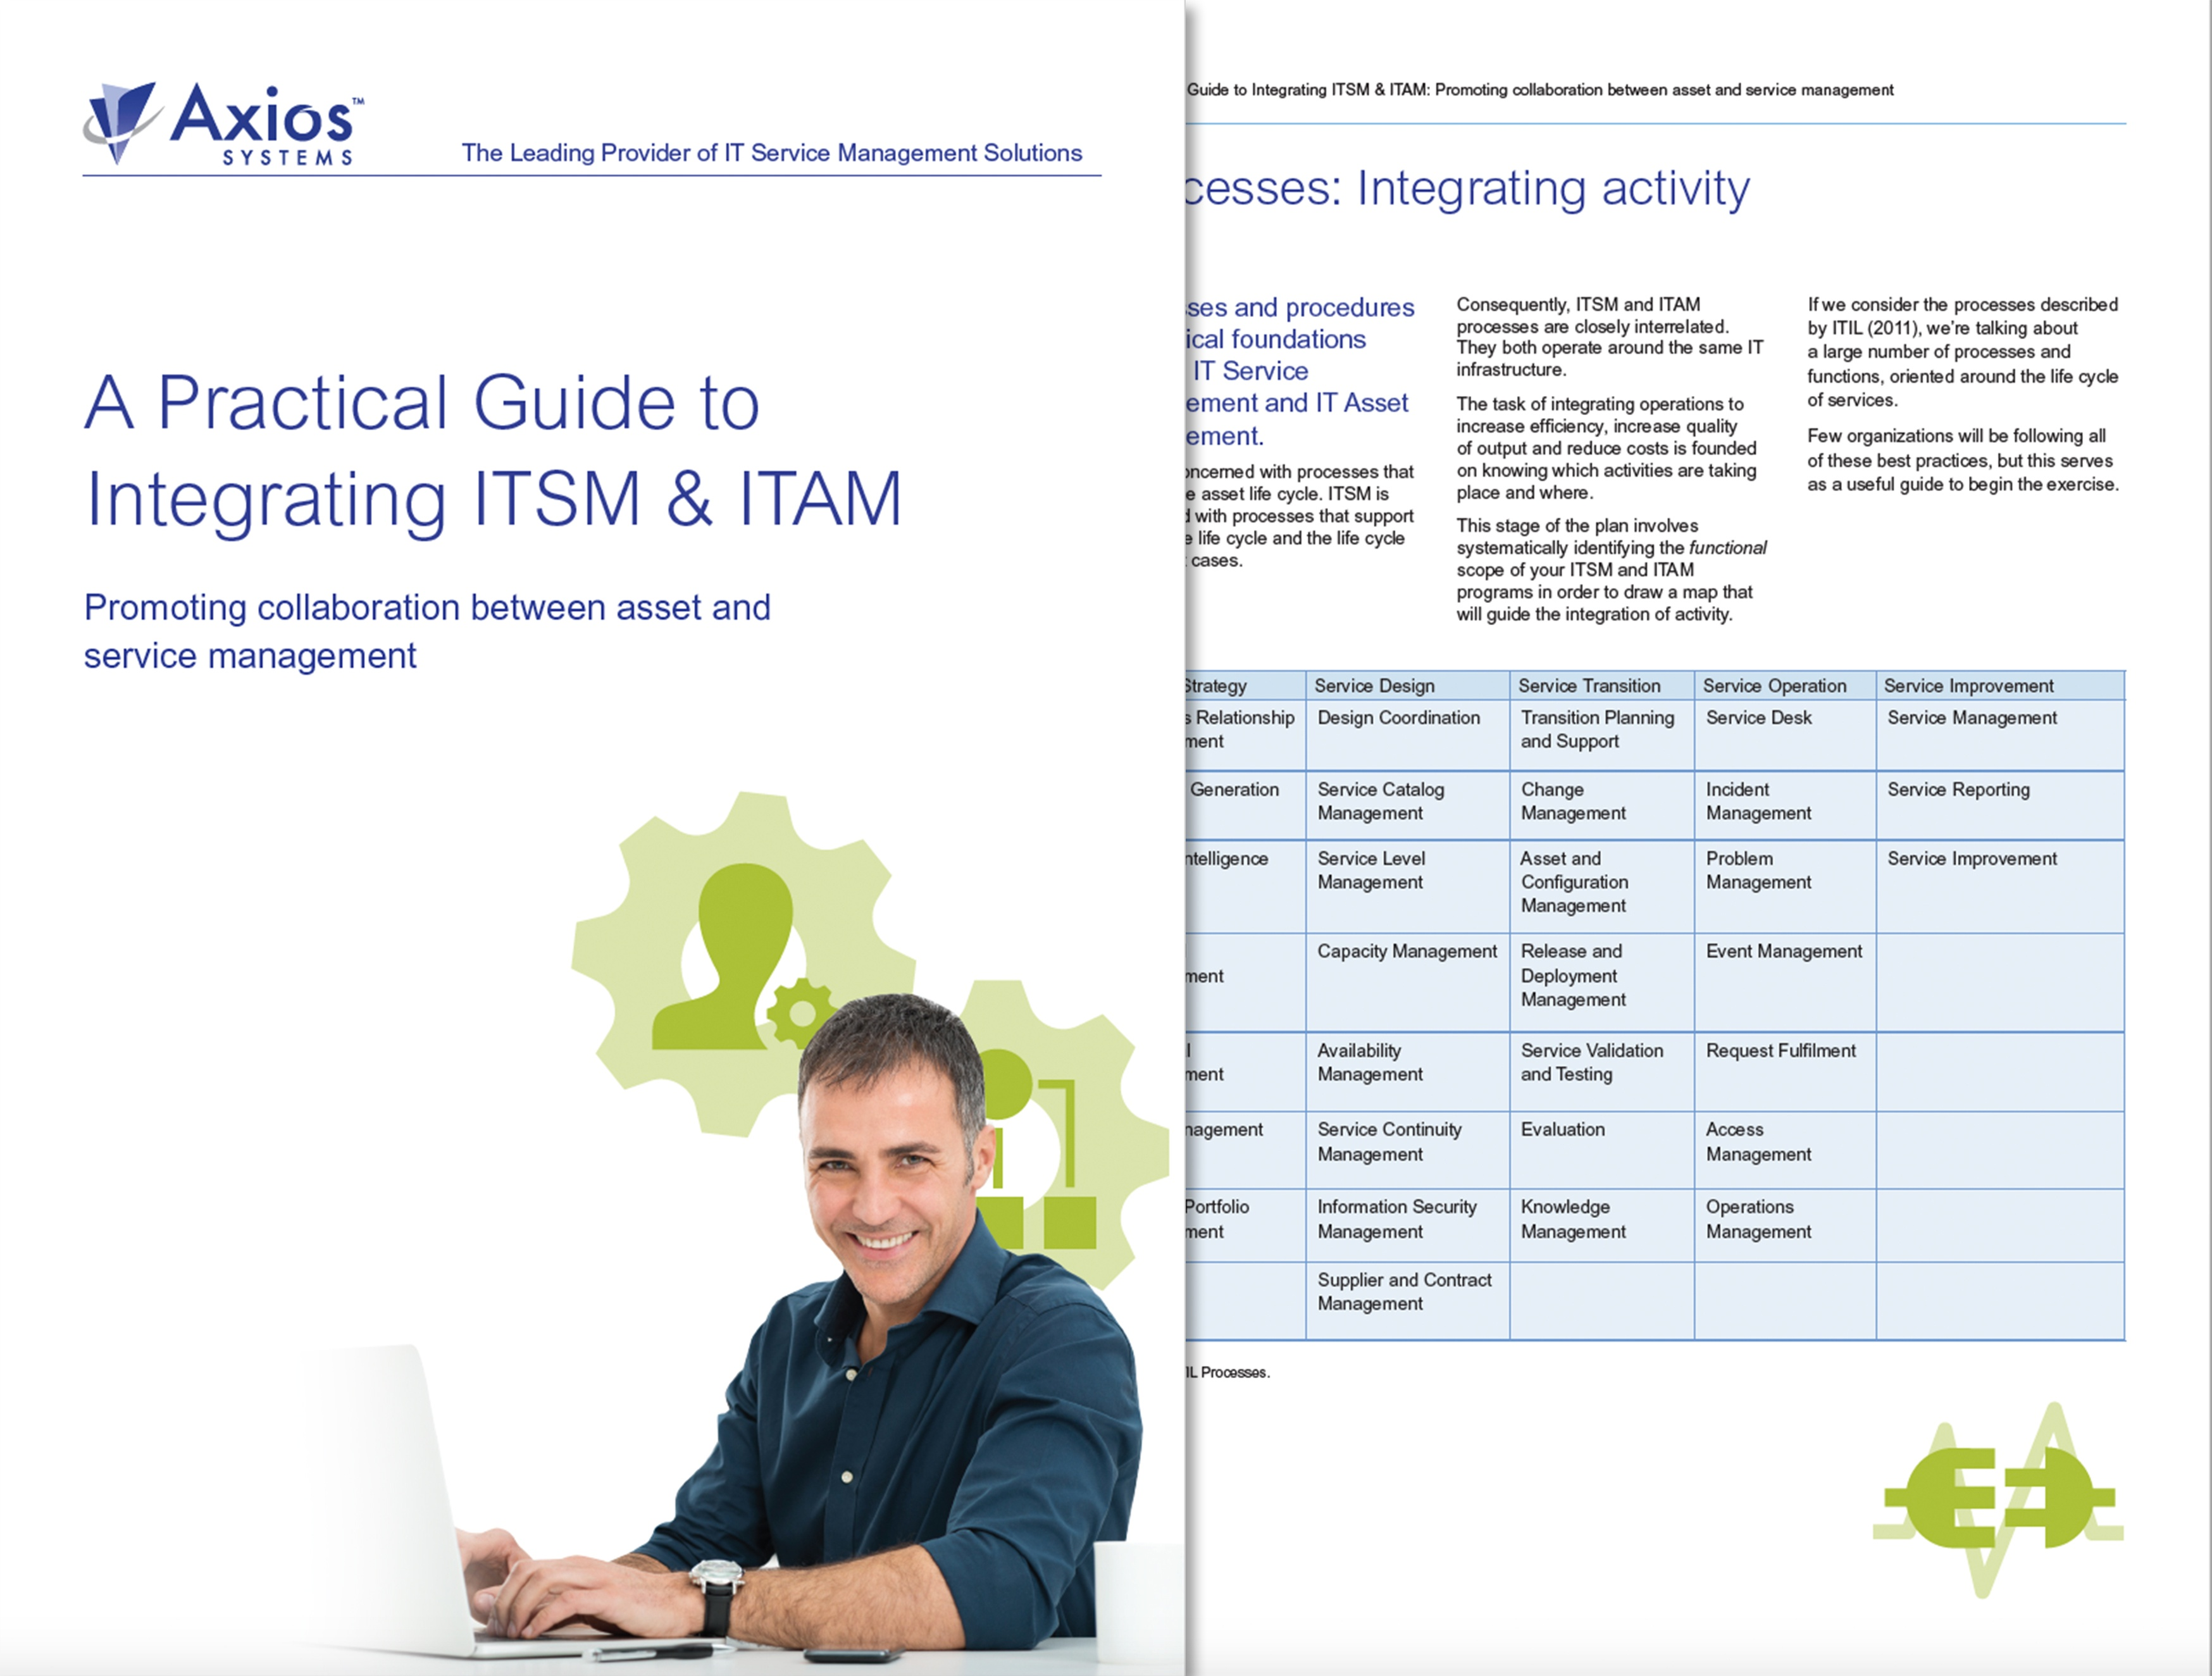 IT whitepaper: Practical guide to integrating ITMS & ITAM